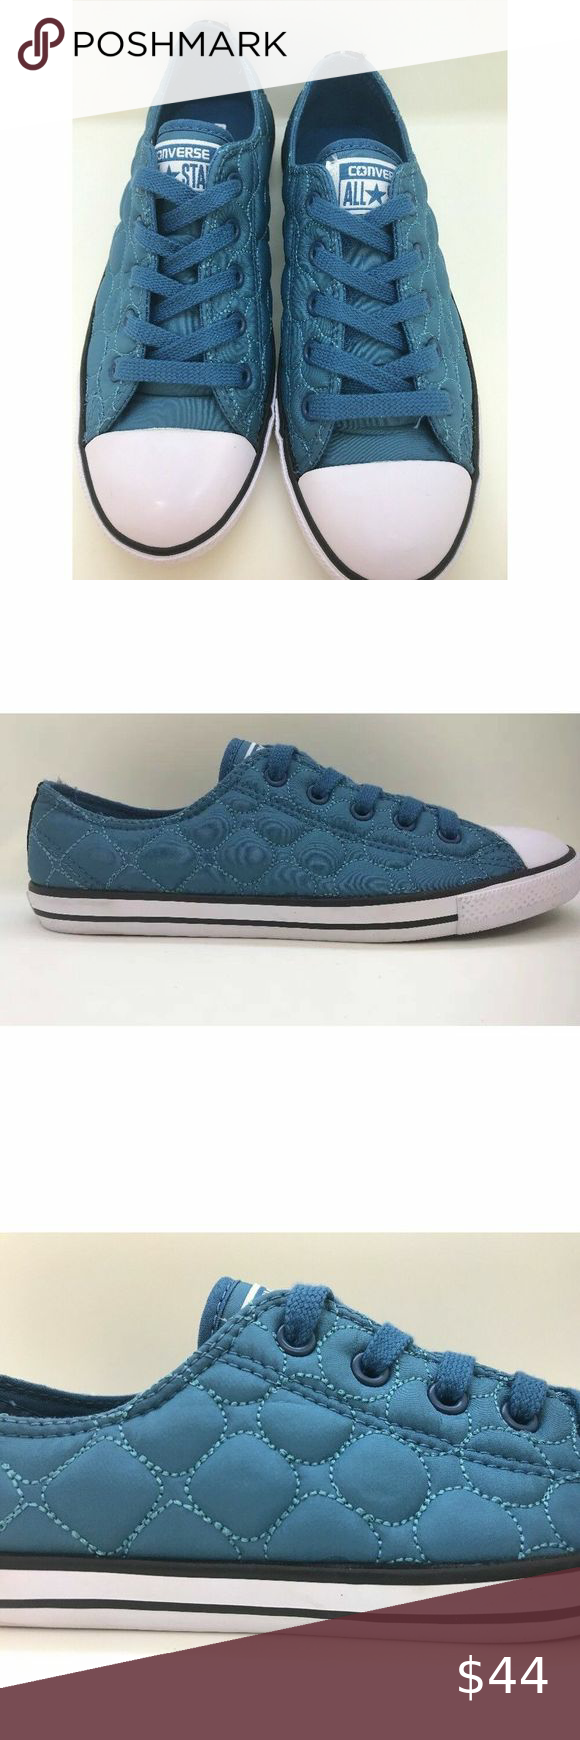 Molestia para Borrar  Converse Dainty OX Blue Quilted Women 6 Converse CT Dainty OX Color is  called Aero Blue Women's size 6 (23 cm) Q… | Converse dainty, Converse,  Womens shoes sneakers